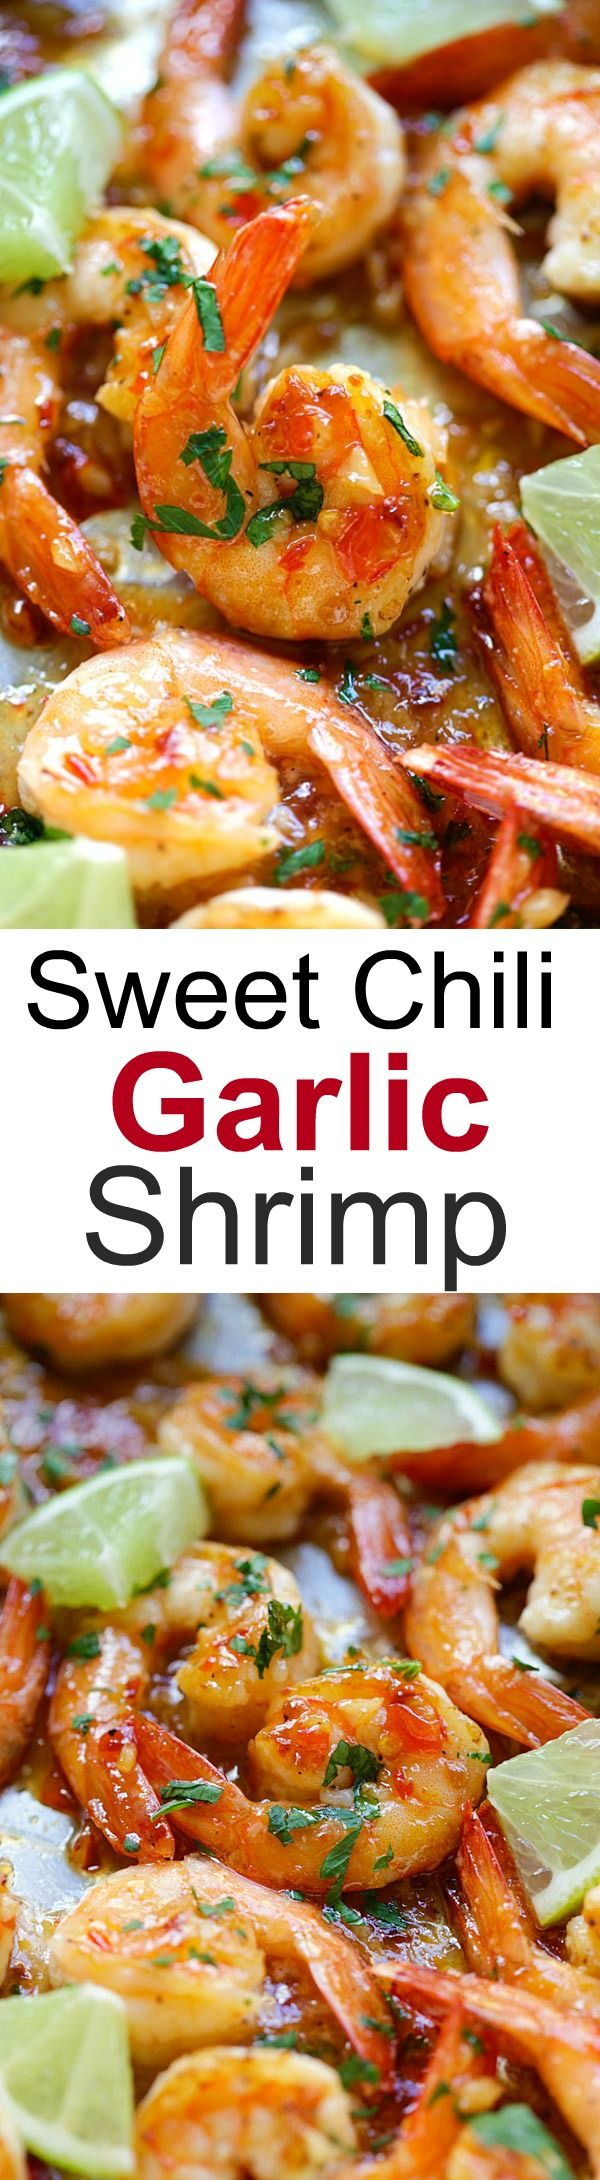 "Sweet Chili-Garlic Shrimp..""Wanna try a new shrimp recipe that takes only 15 min? This sweet chili-garlic shrimp is absolutely good, sticky sweet, spicy, savory and finger lickin' good. The best shrimp recipe that takes so little time to make. -- Bee"""